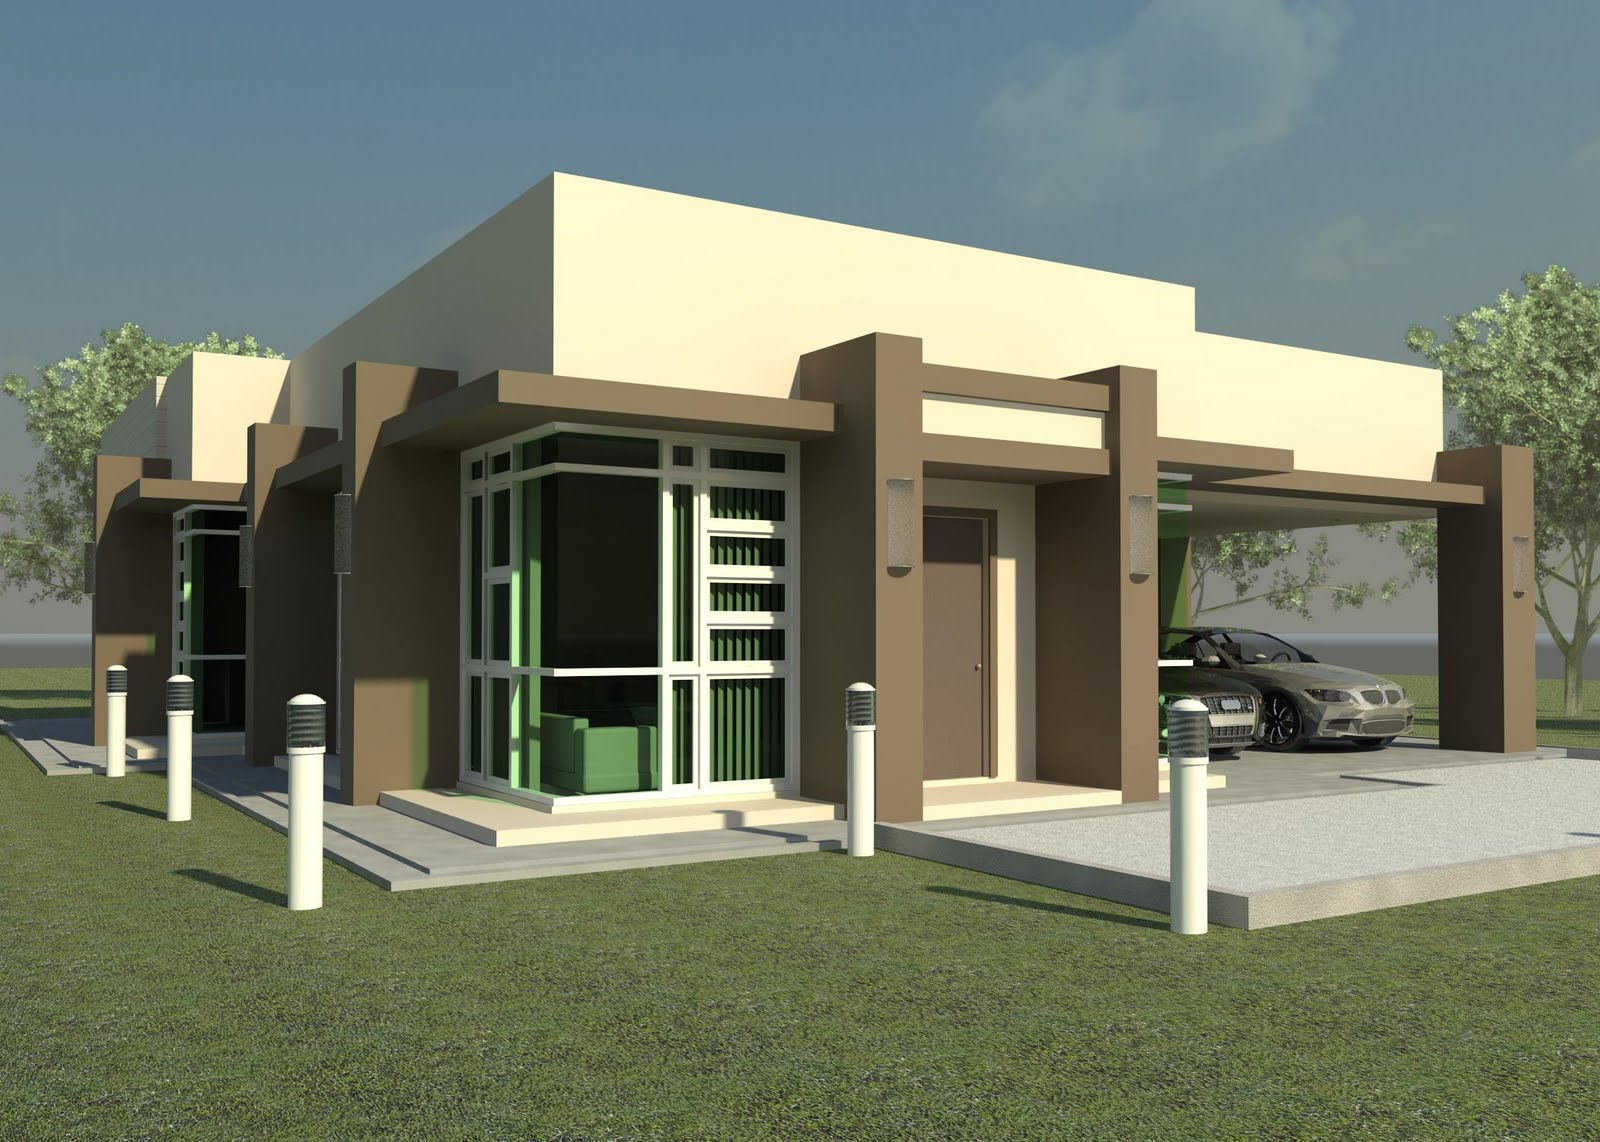 New home designs latest modern homes beautiful single for Contemporary single story home designs